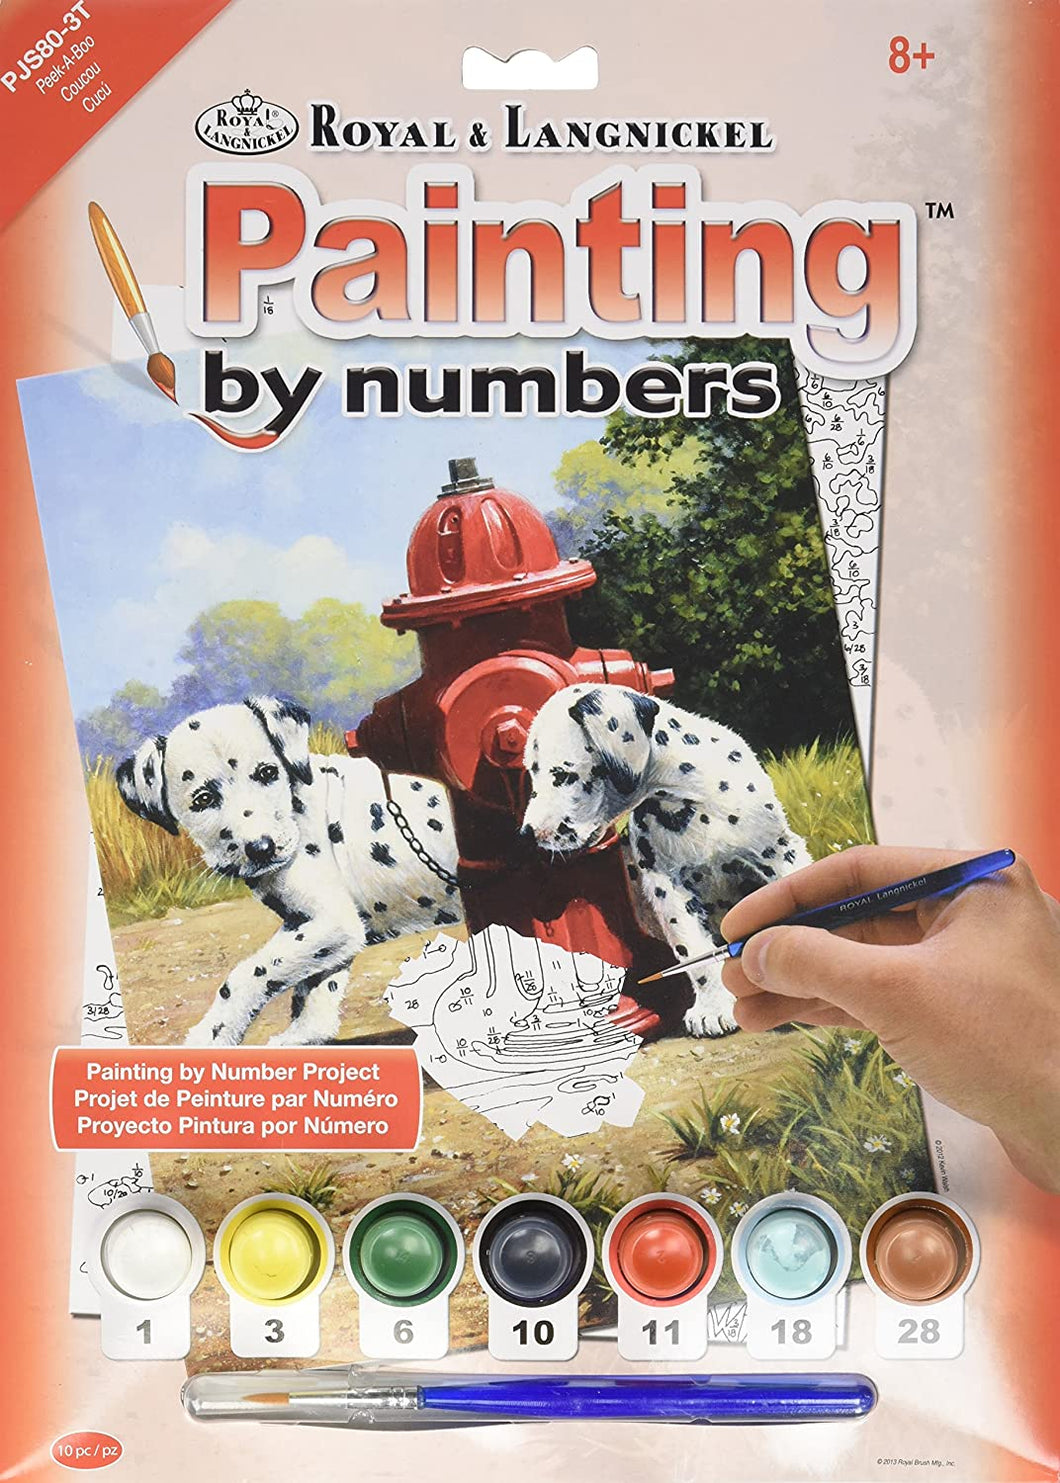 Royal & Langnickel Peek-A-Boo Design Paint by Numbers Kit The Bubble Room Skerries Dublin